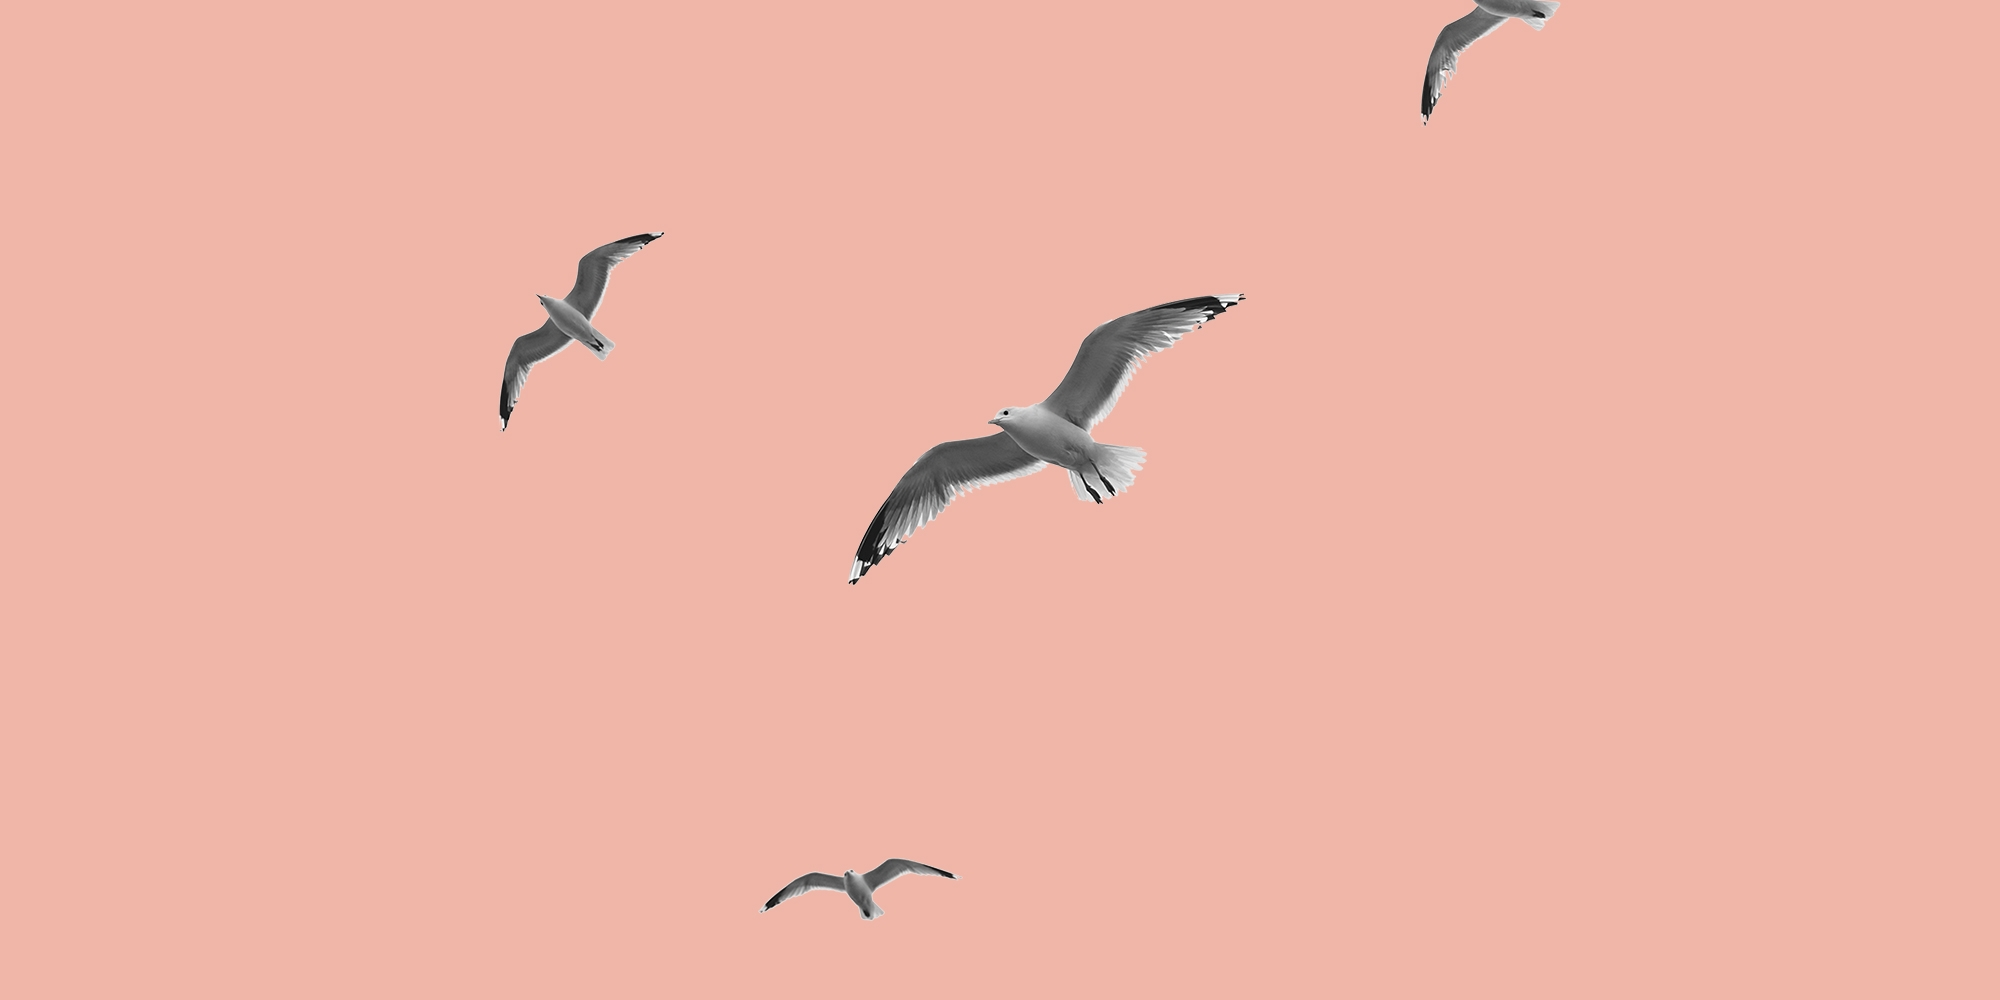 Birds on a peach background. Forgiveness: A key to recovery